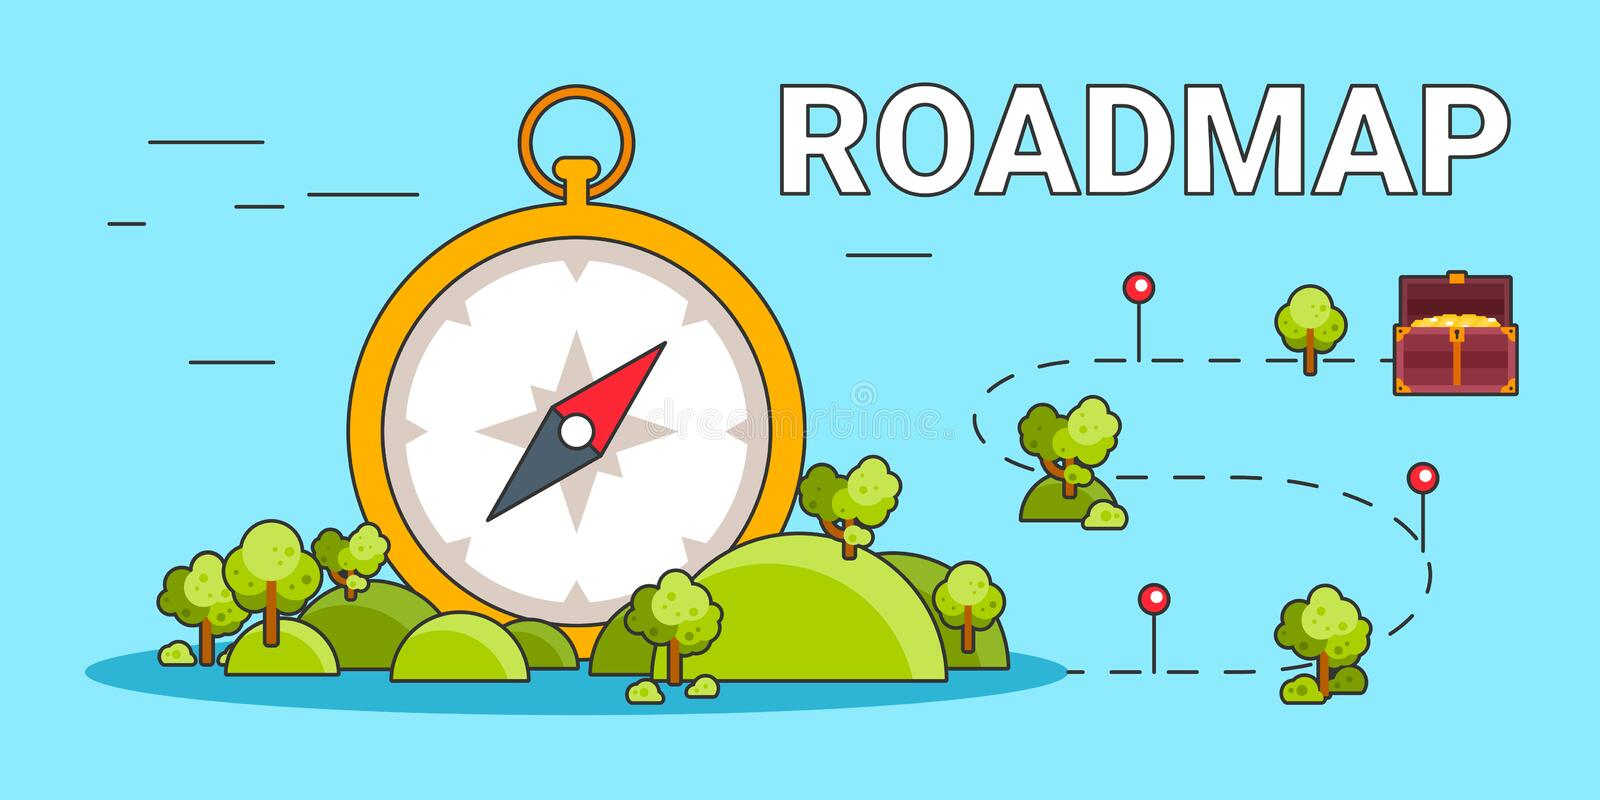 Image result for road map clipart